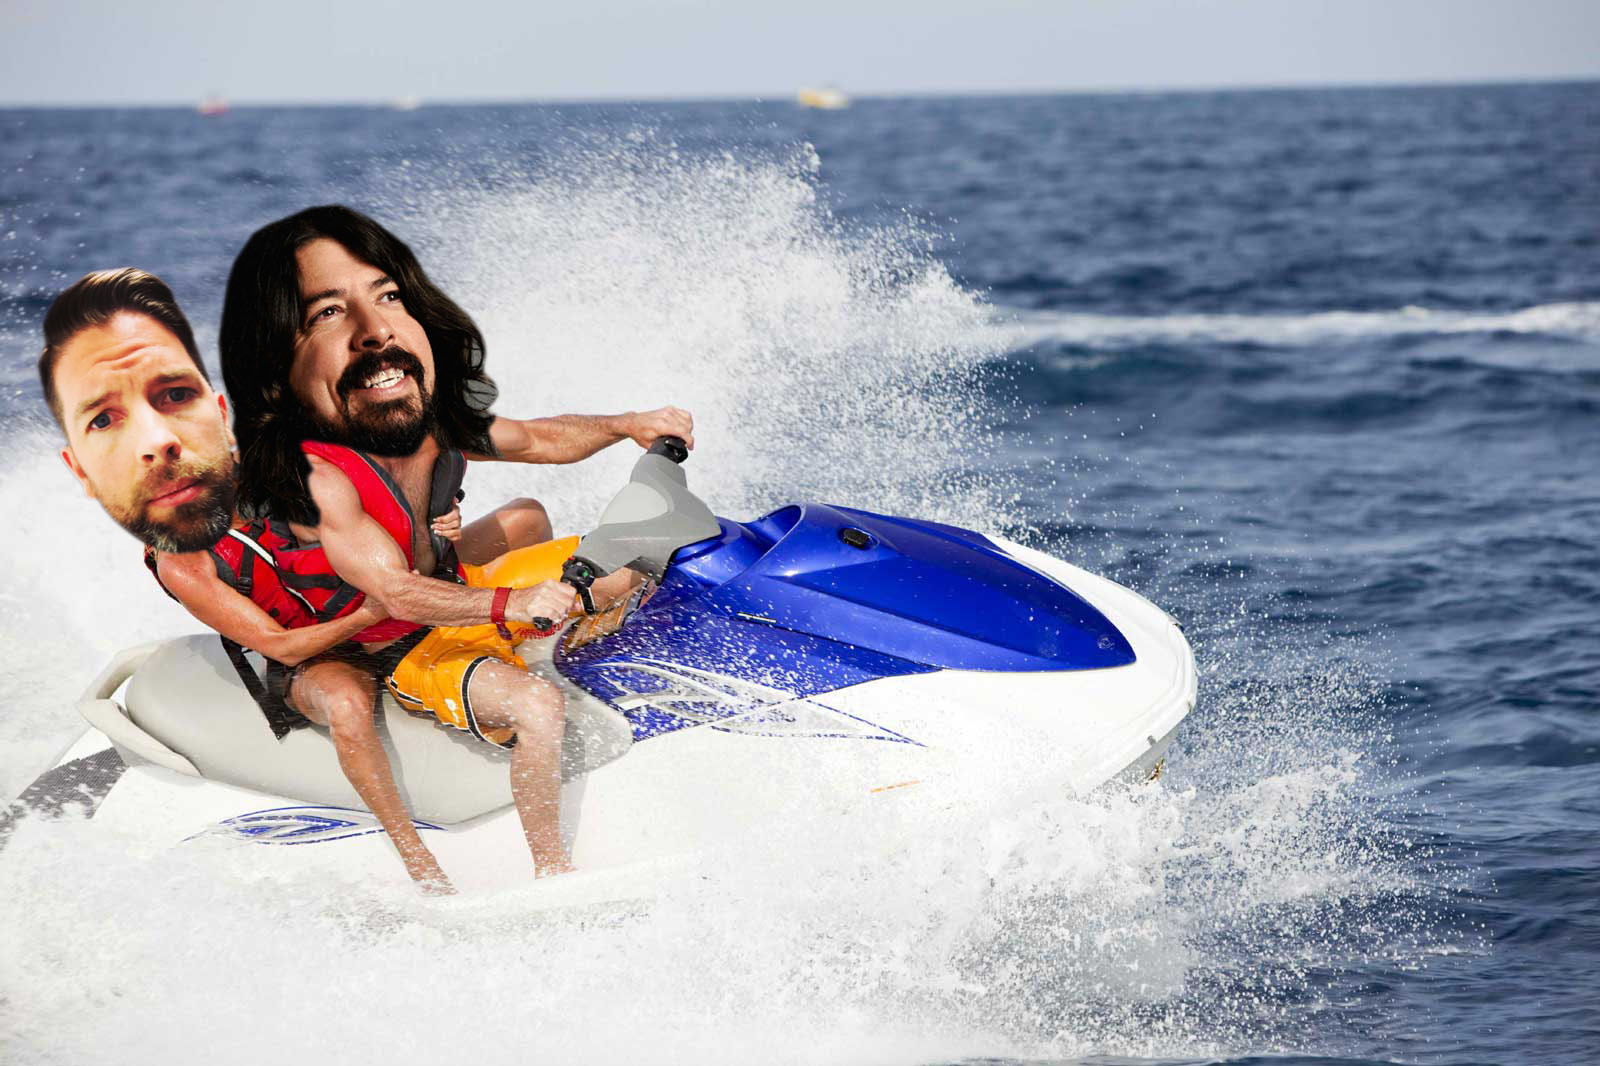 This photoshopped picture of Dave Grohl and myself jet skiing is the closest I'll ever get to heaven.